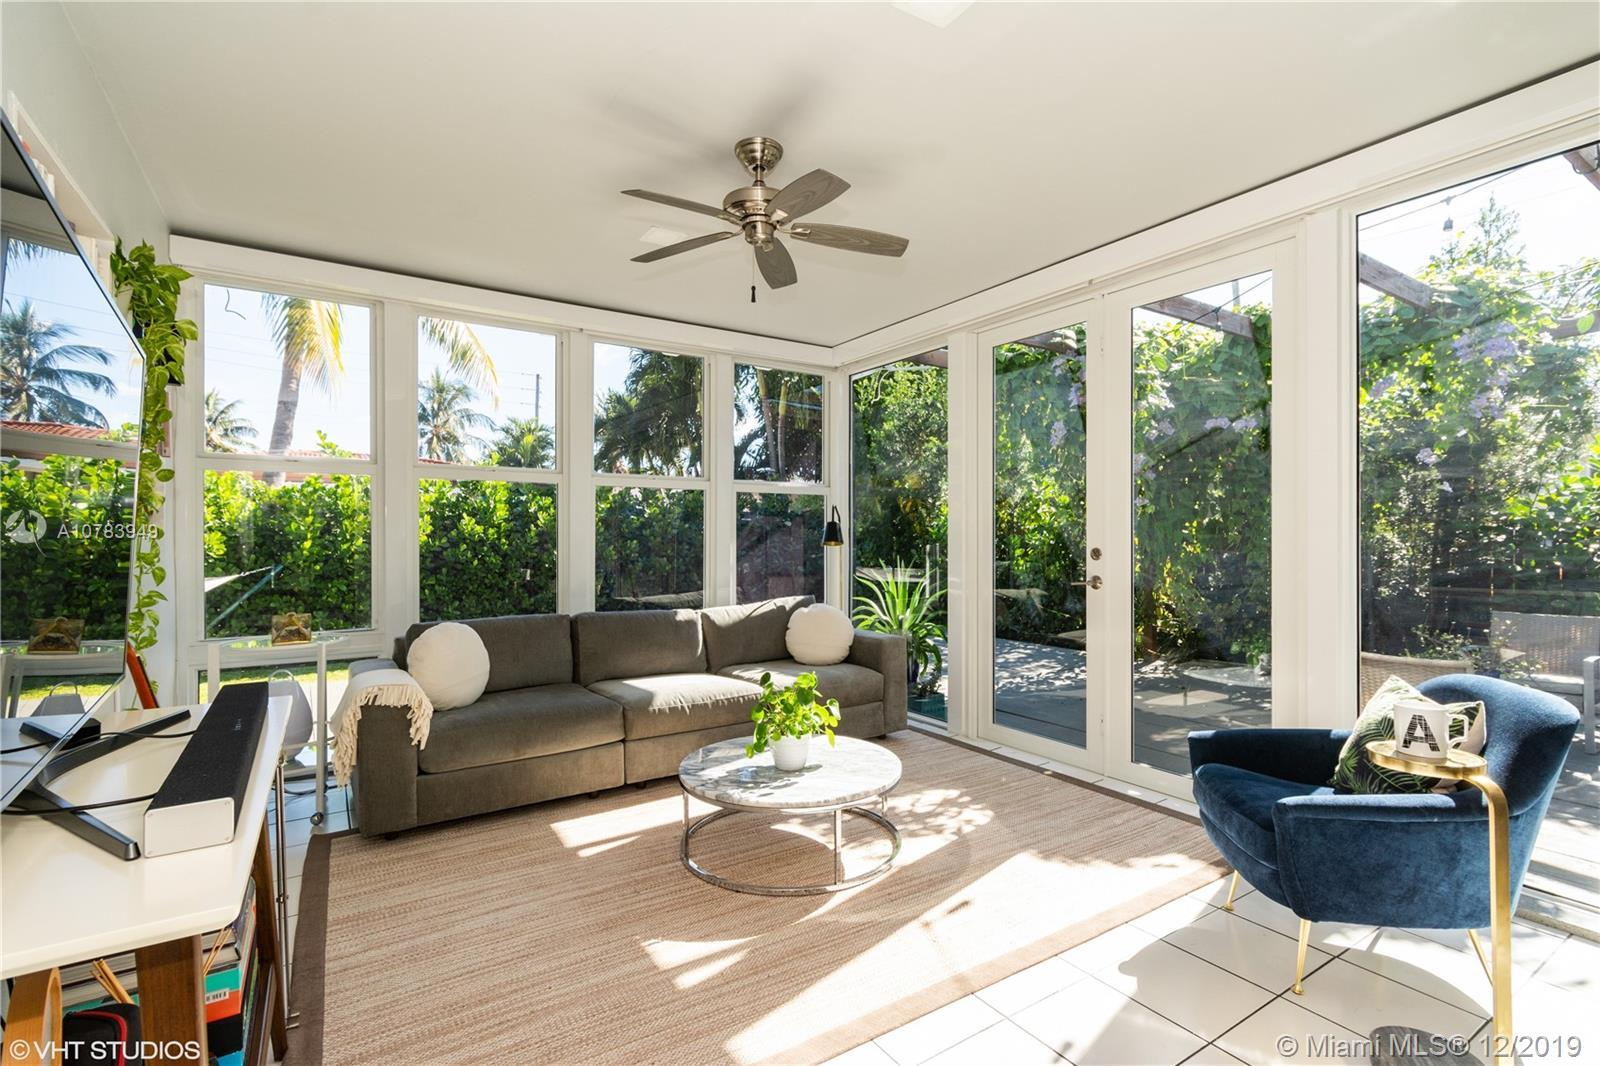 Walk to the beach from this fabulous bright + sunlit Classic 1950s (MeMo) 3 bedroom / 2.25 bath spli